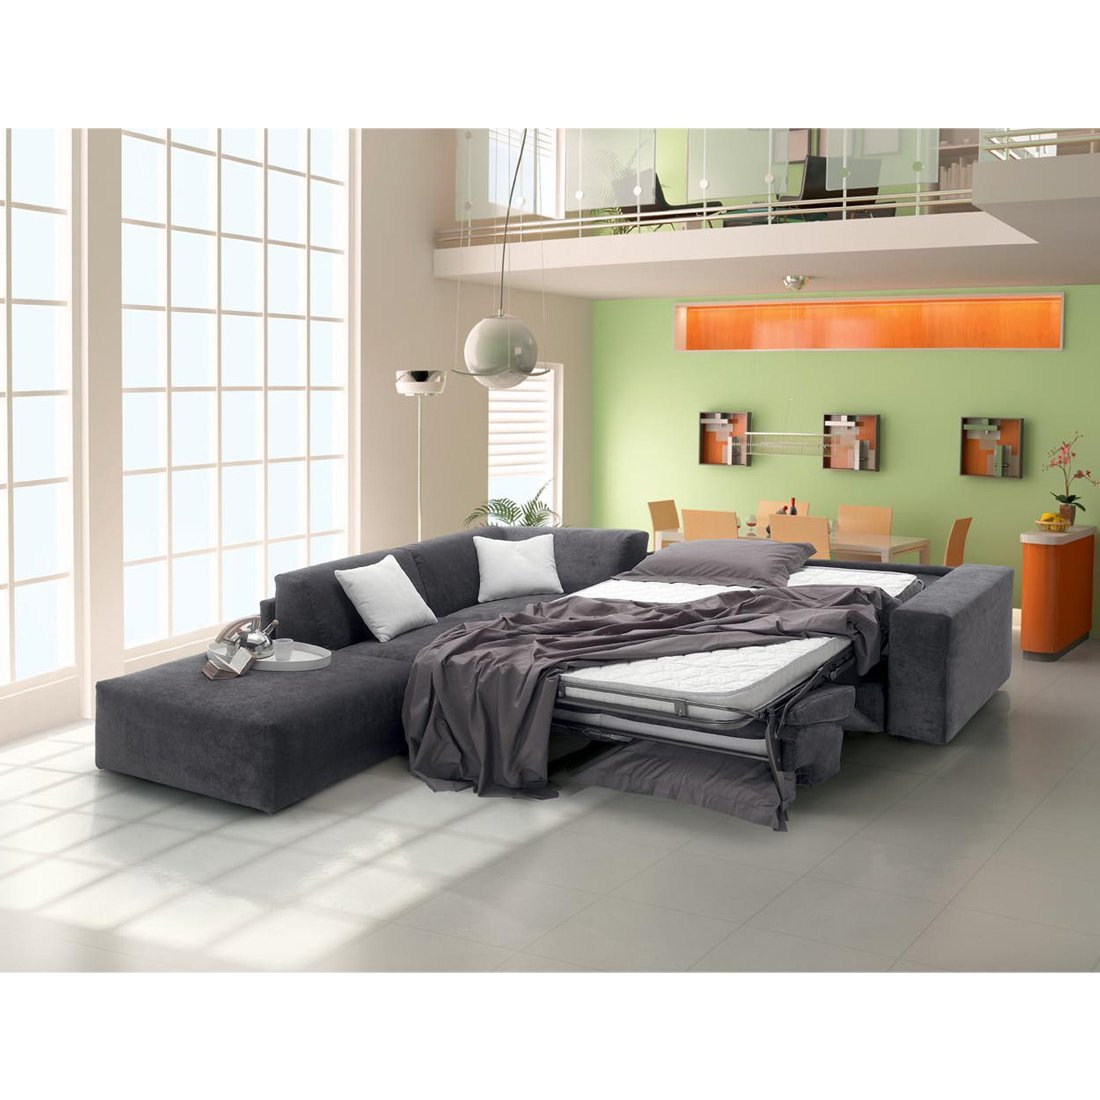 canap dangle dans petit salon canape d angle pour petit salon meubles et dcor couleur gris dans. Black Bedroom Furniture Sets. Home Design Ideas